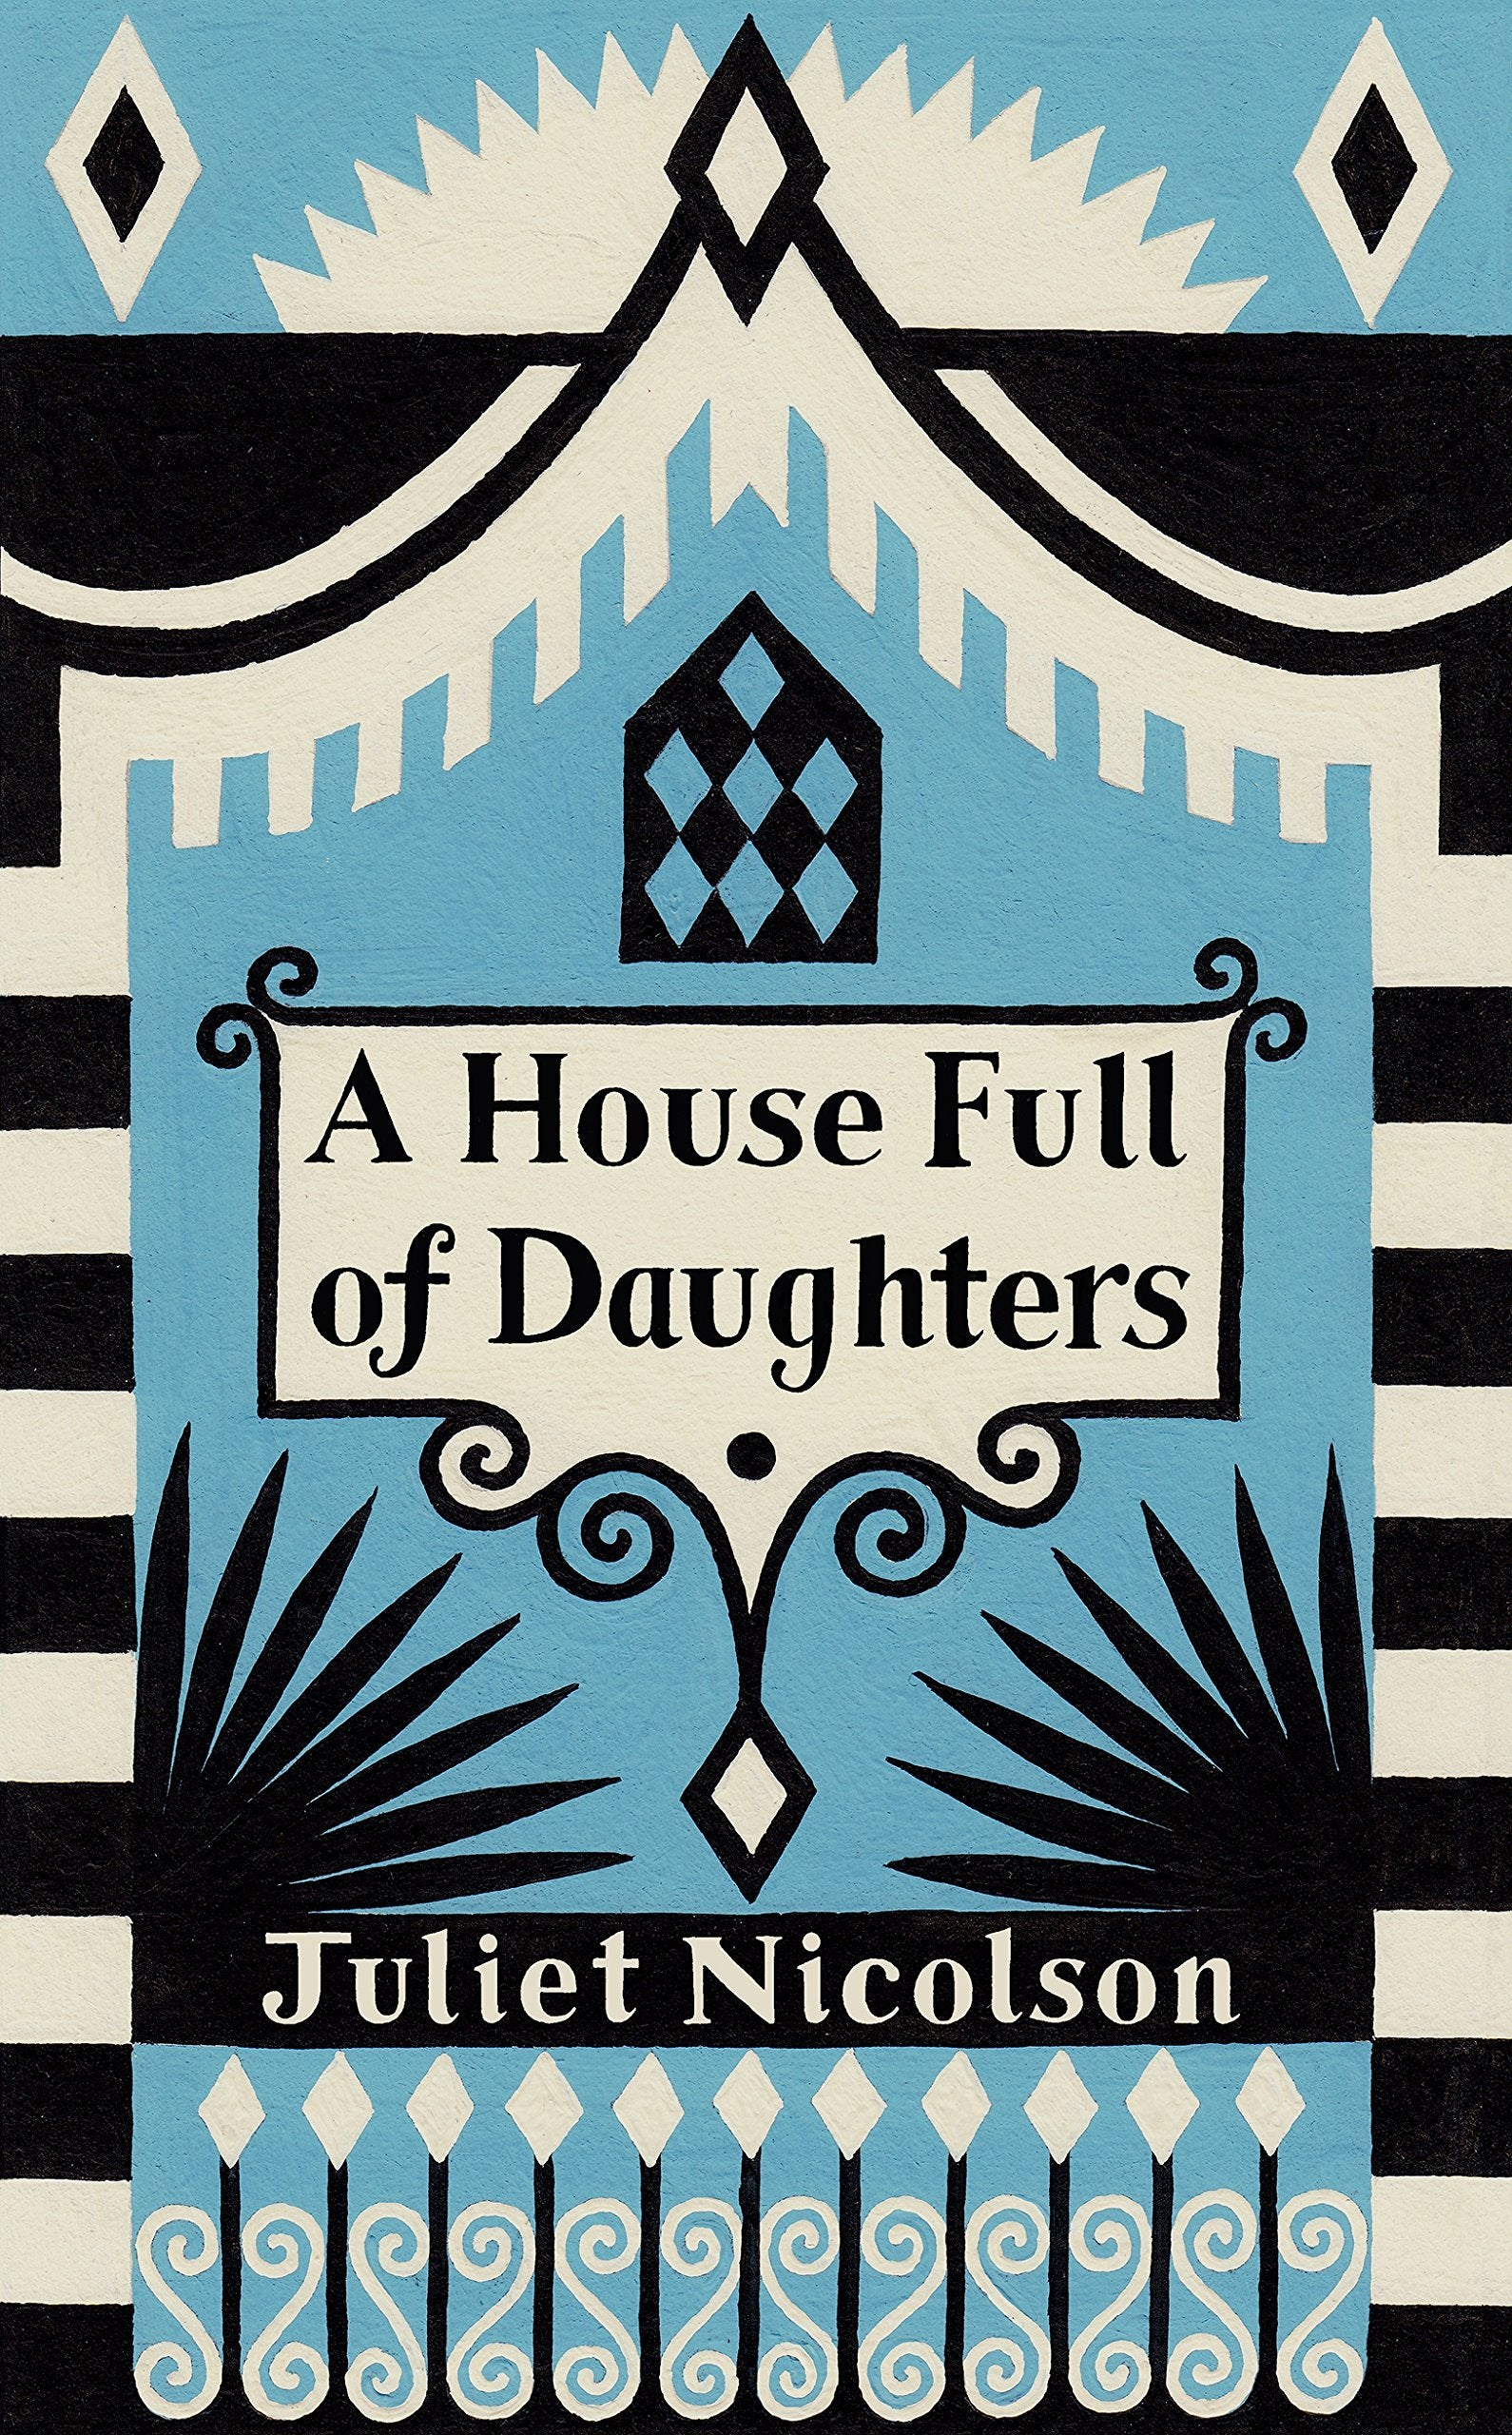 Ssōne x Claire De Rouen Seconds - A House Full of Daughters - Juliet Nicolson